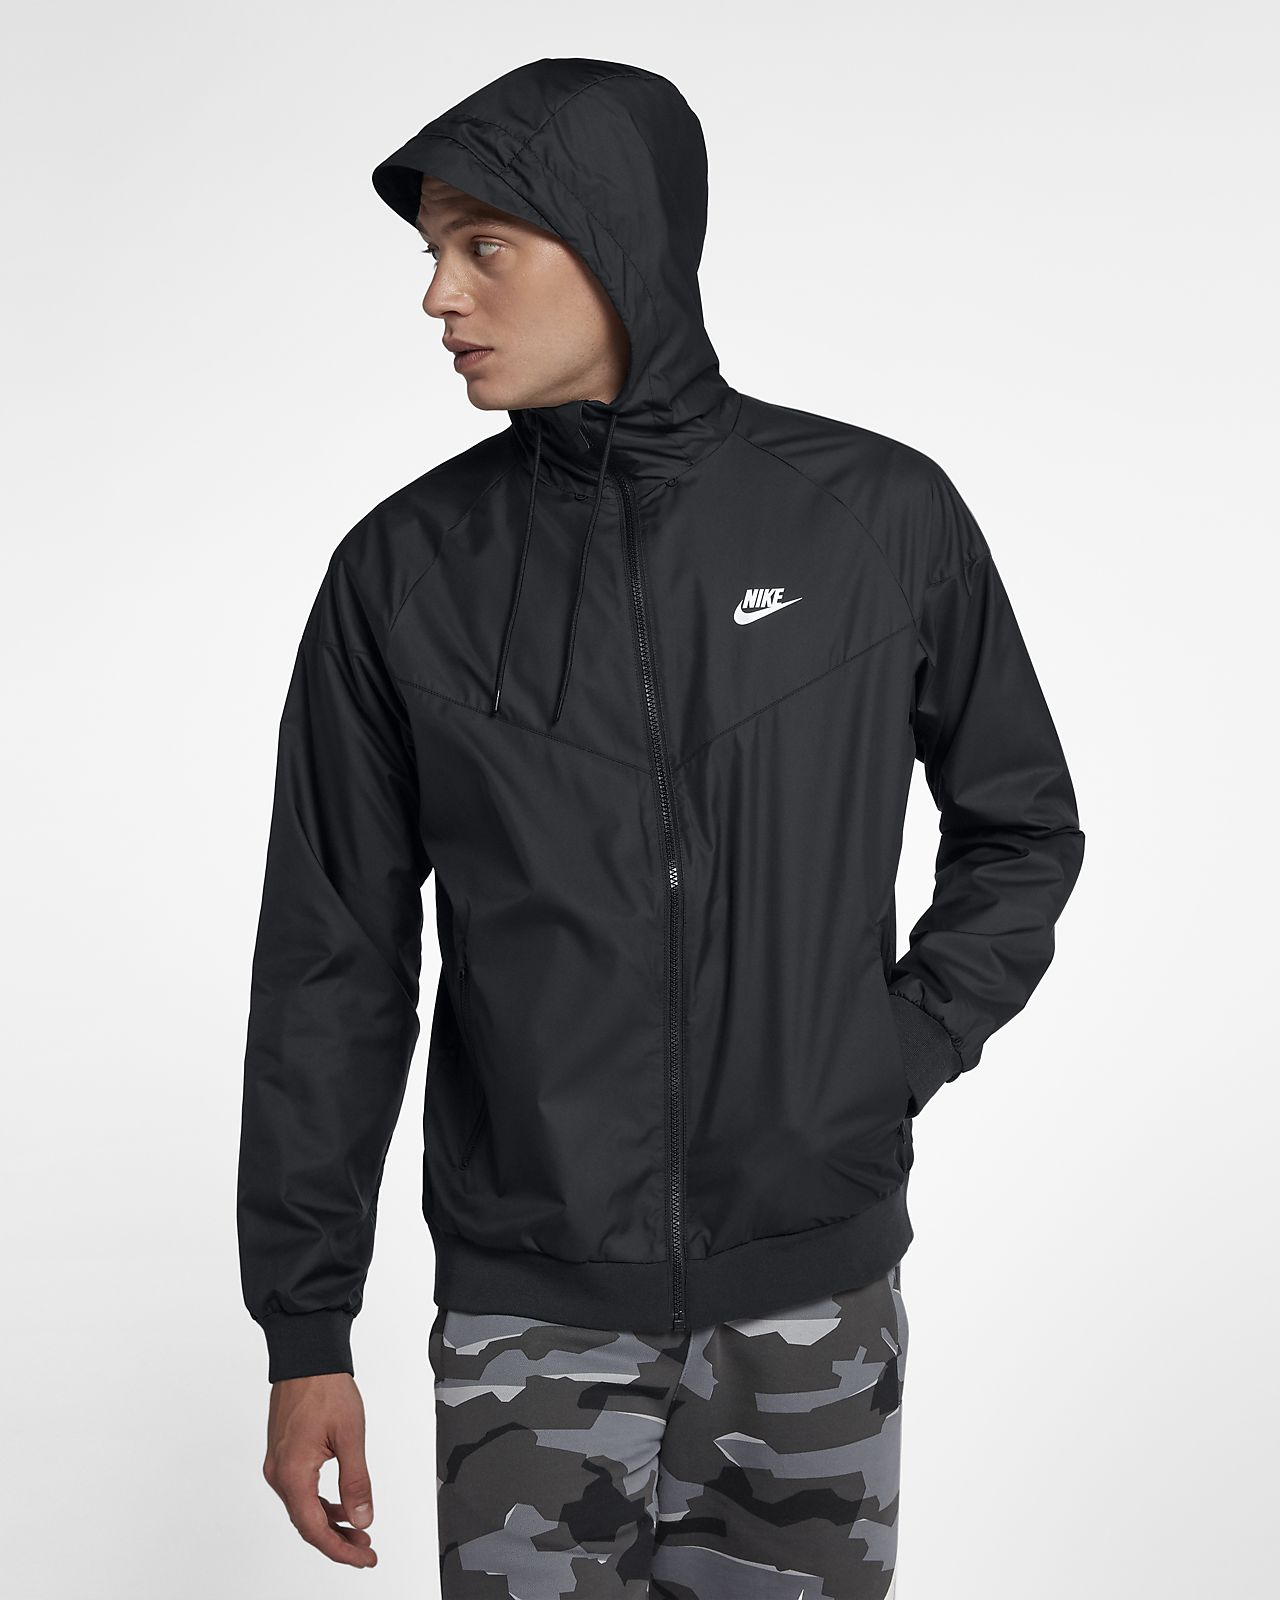 finest selection b7cd3 9db33 Low Resolution Nike Sportswear Windrunner Mens Jacket Nike Sportswear  Windrunner Mens Jacket